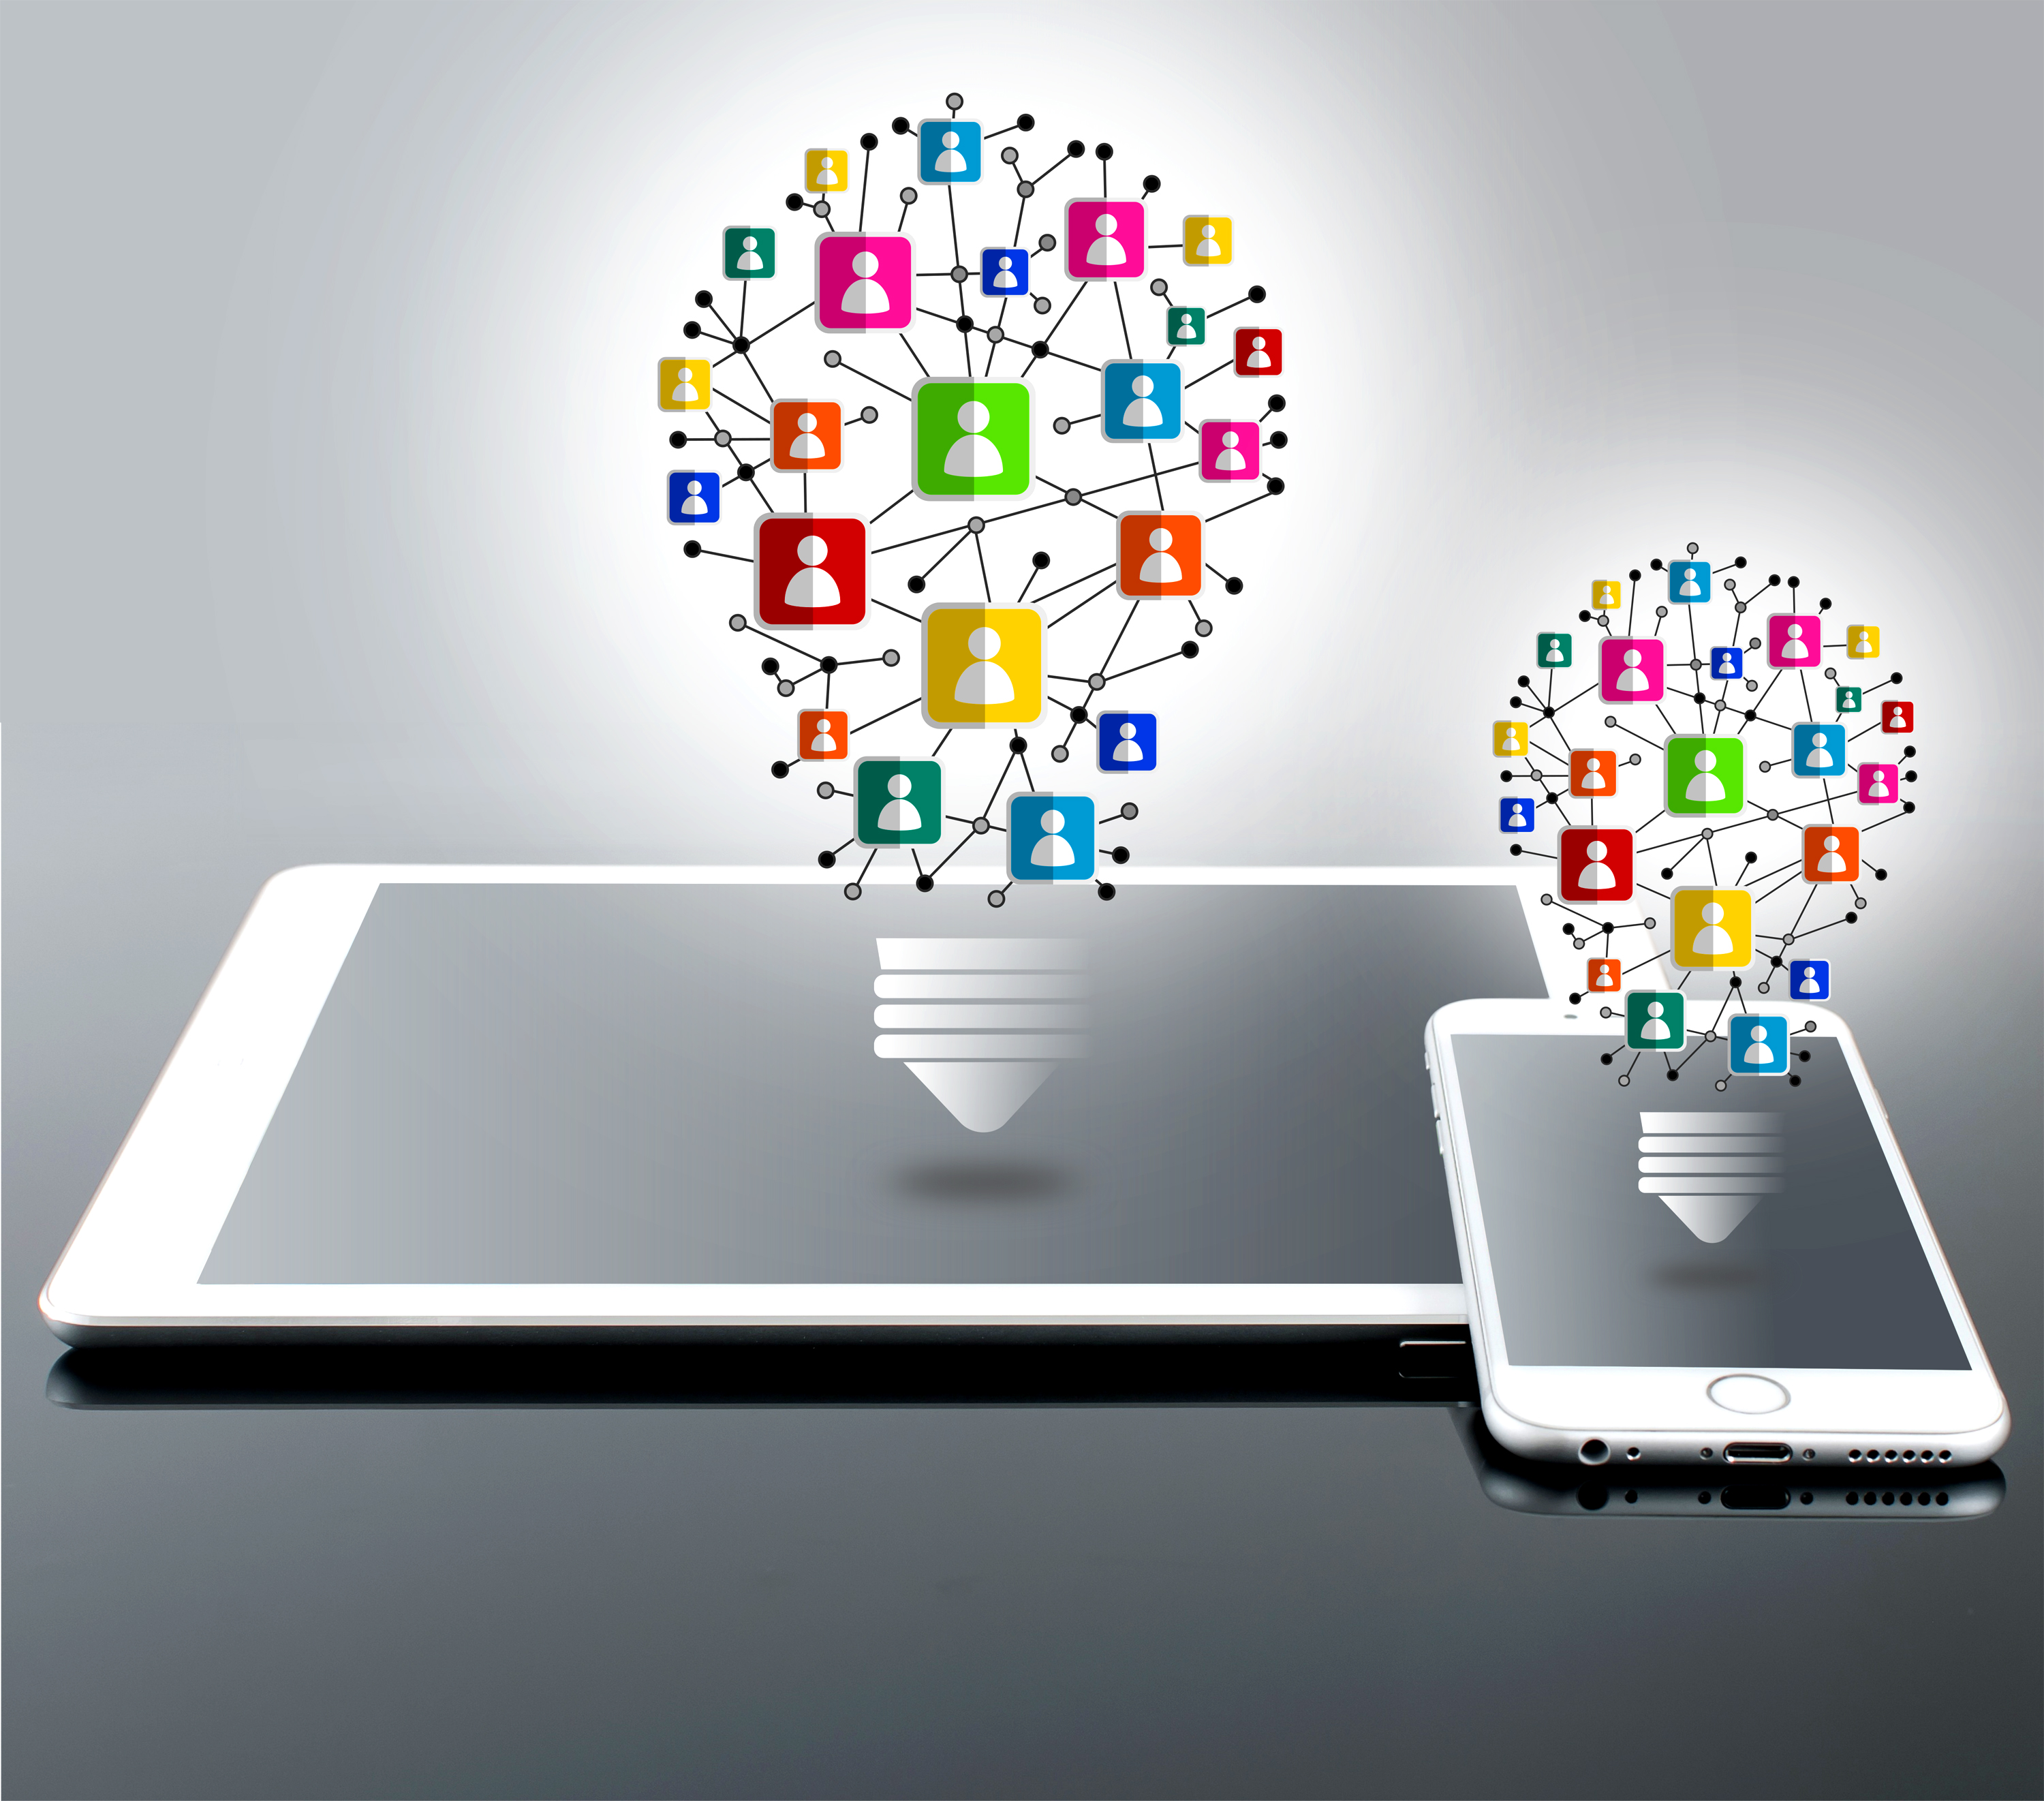 Interpersonal Communication Idea with Lightbulbs and Devices, , Mobile, Organizer, Of, HQ Photo